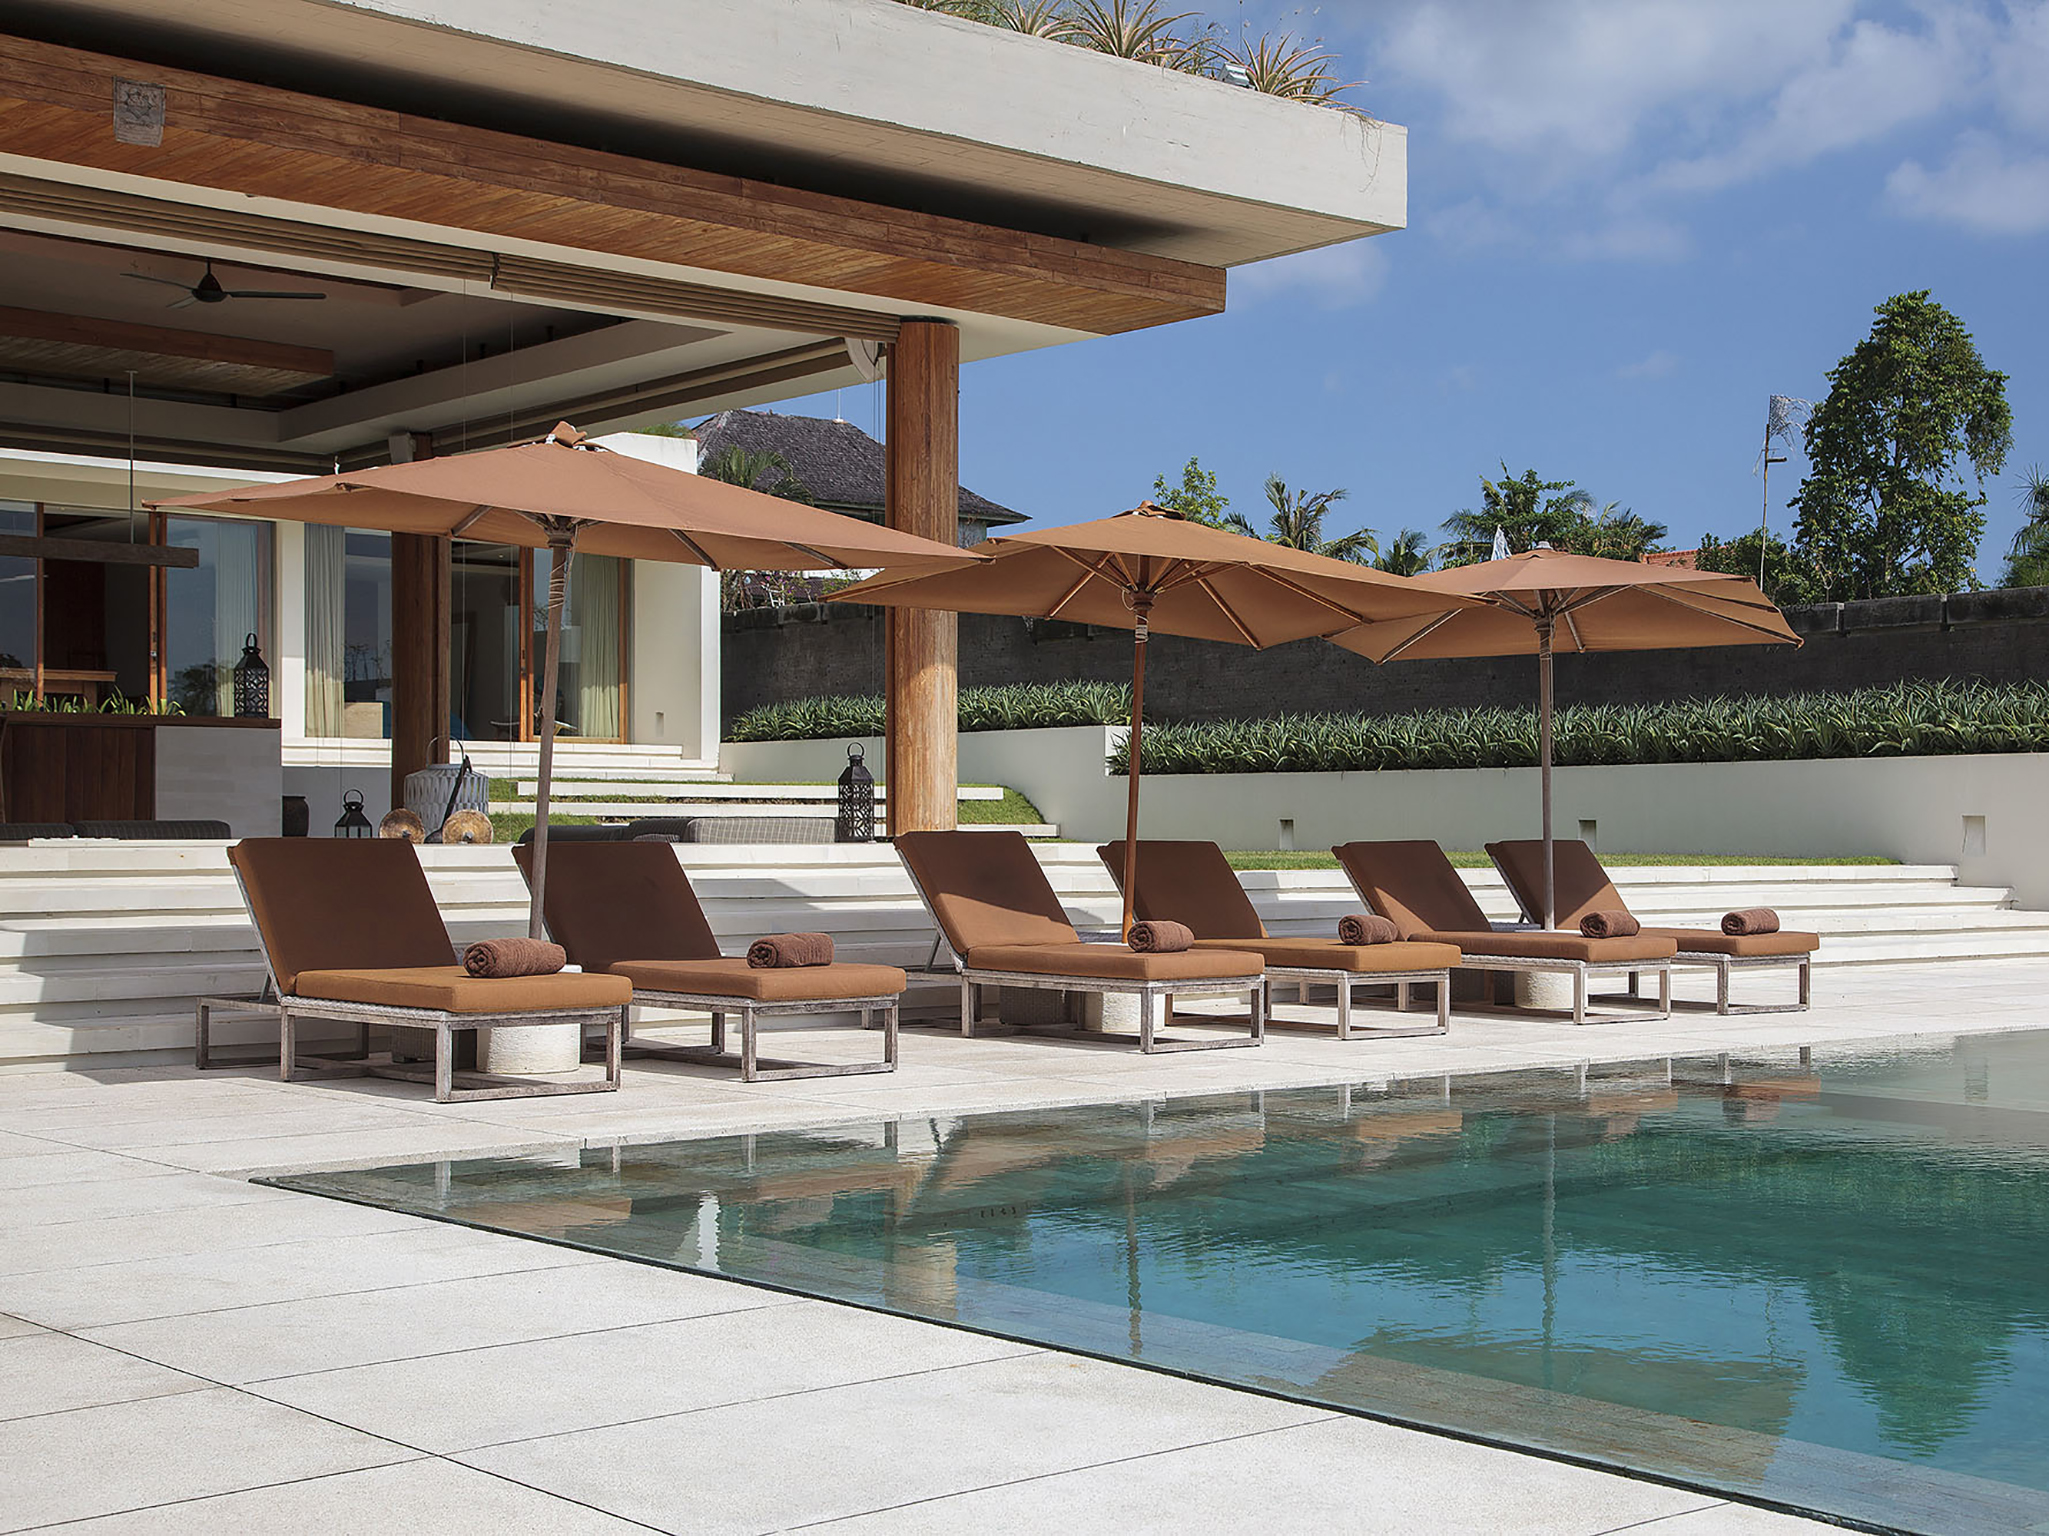 The Iman Villa - Sun loungers by the pool - The Iman Villa, Canggu, Bali